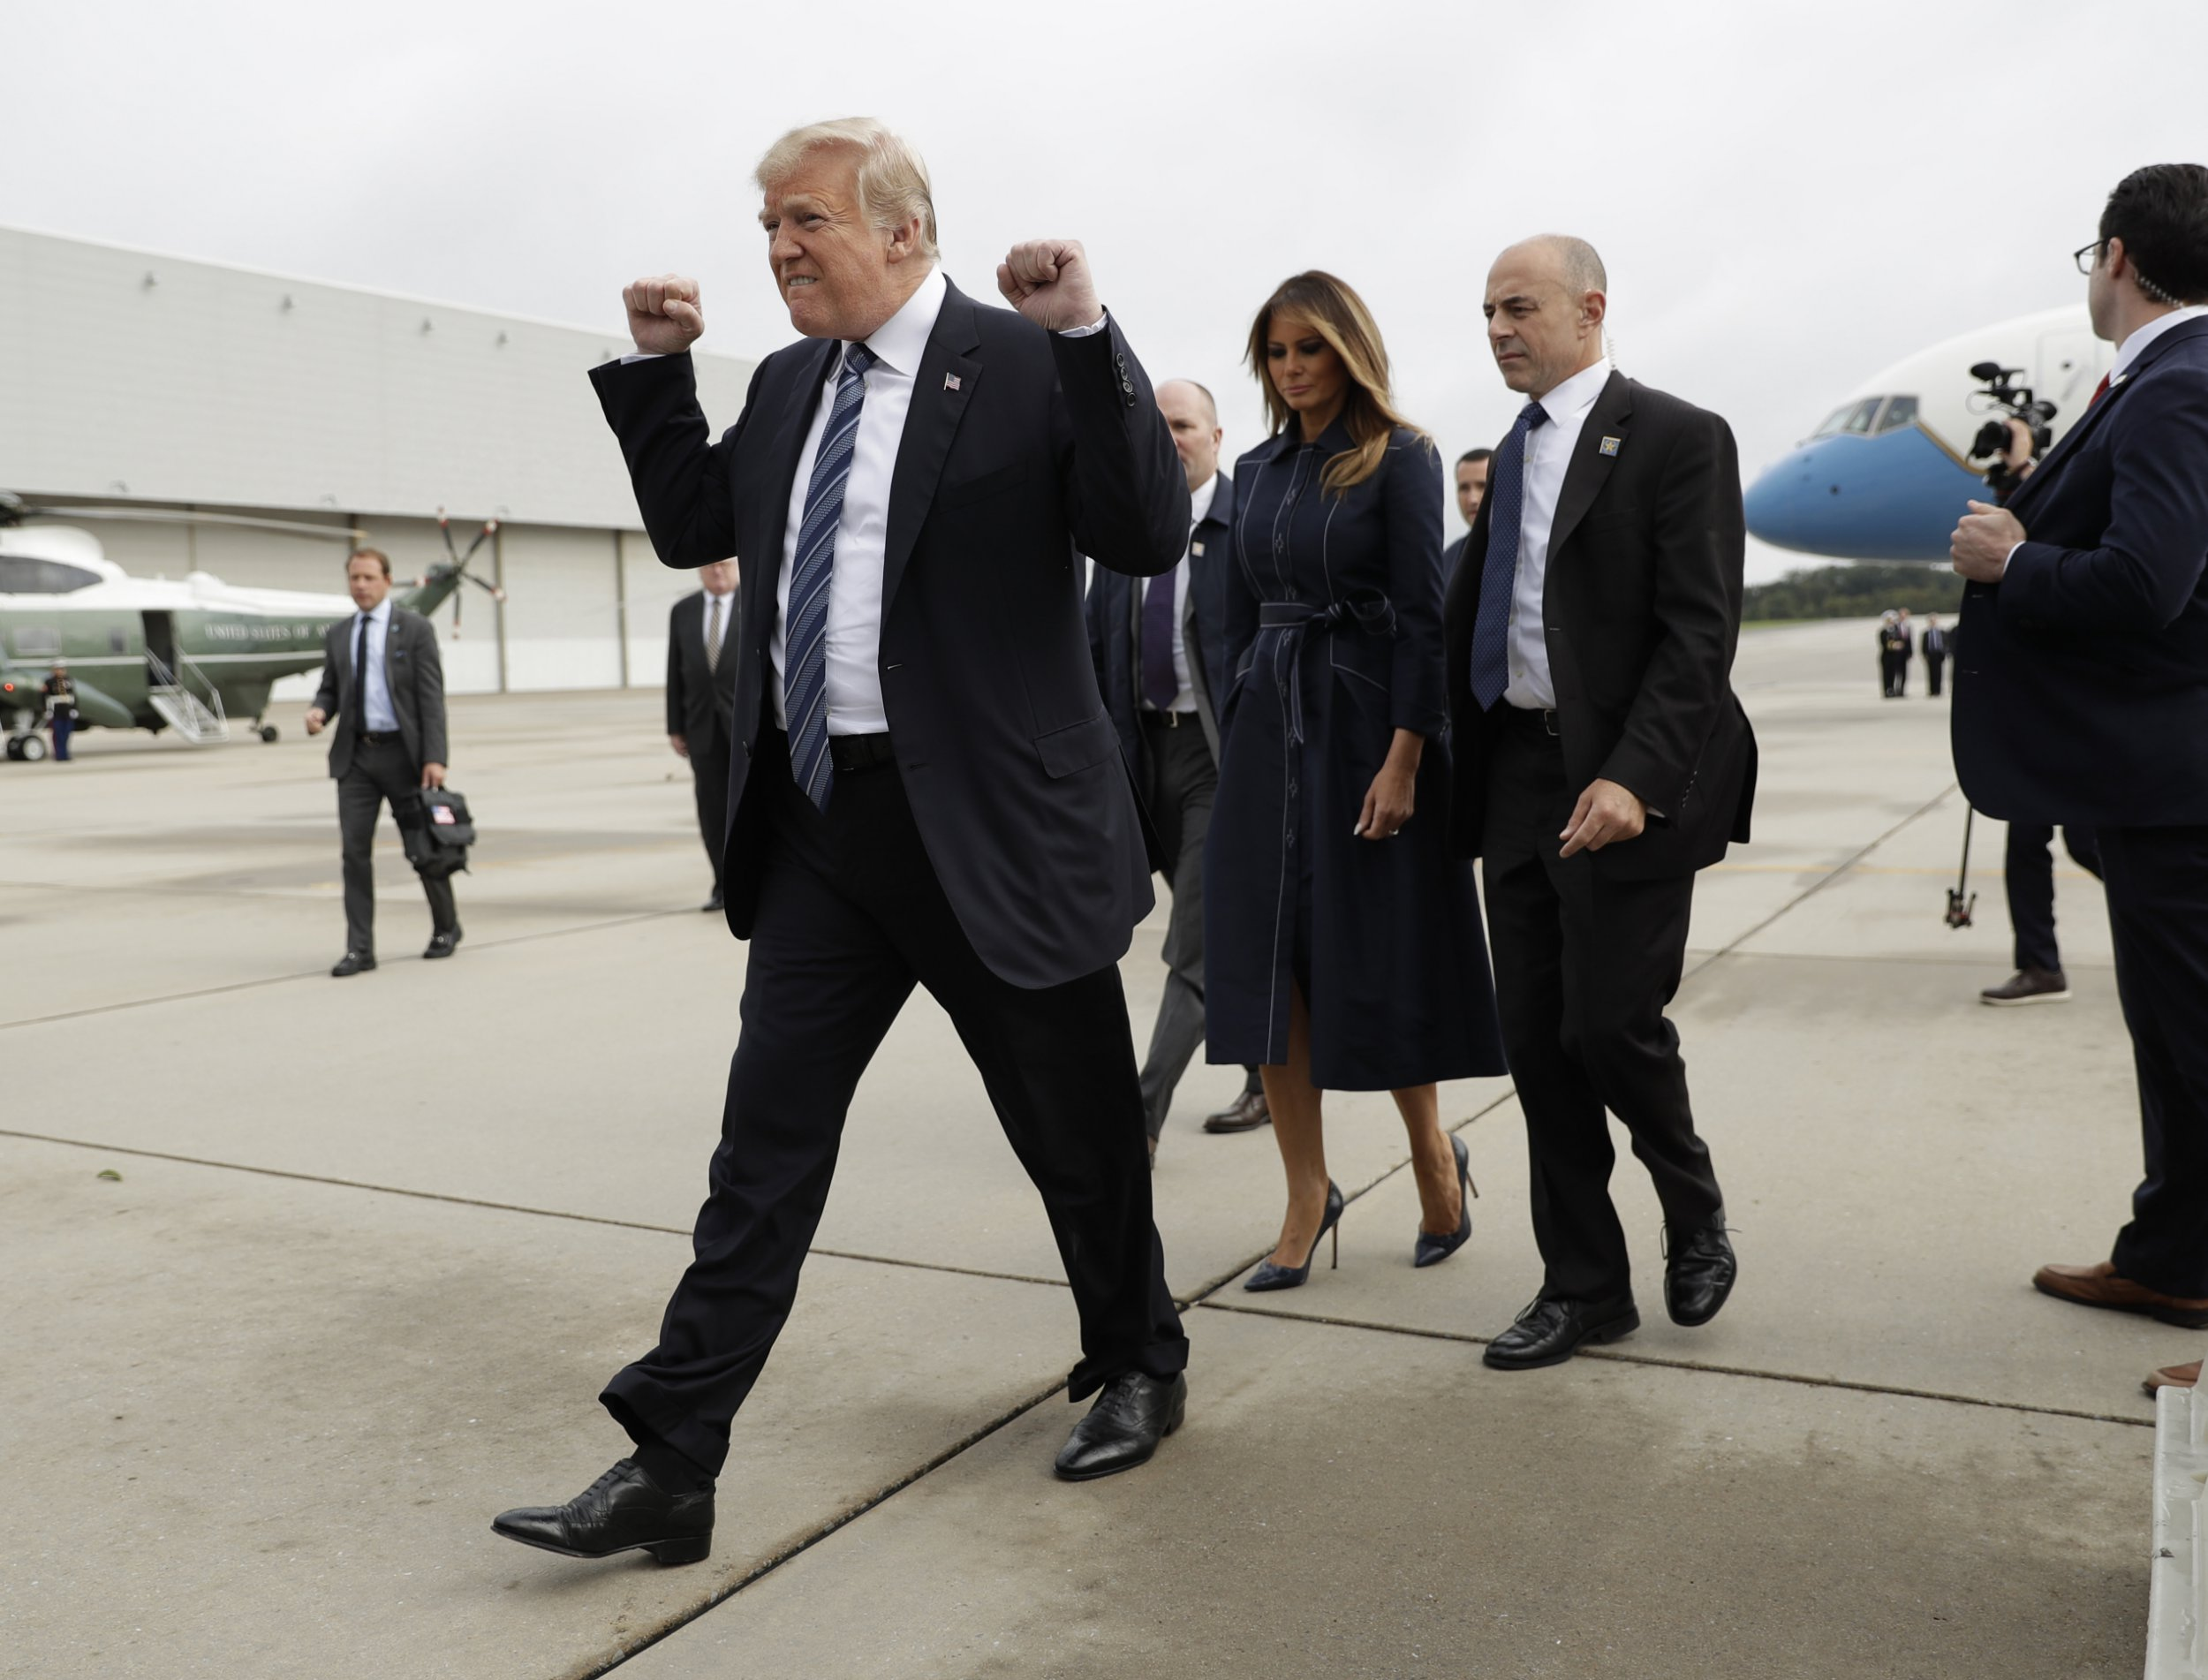 Donald Trump blasted for giving 'smug' fist pump on arriving at 9/11 memorial